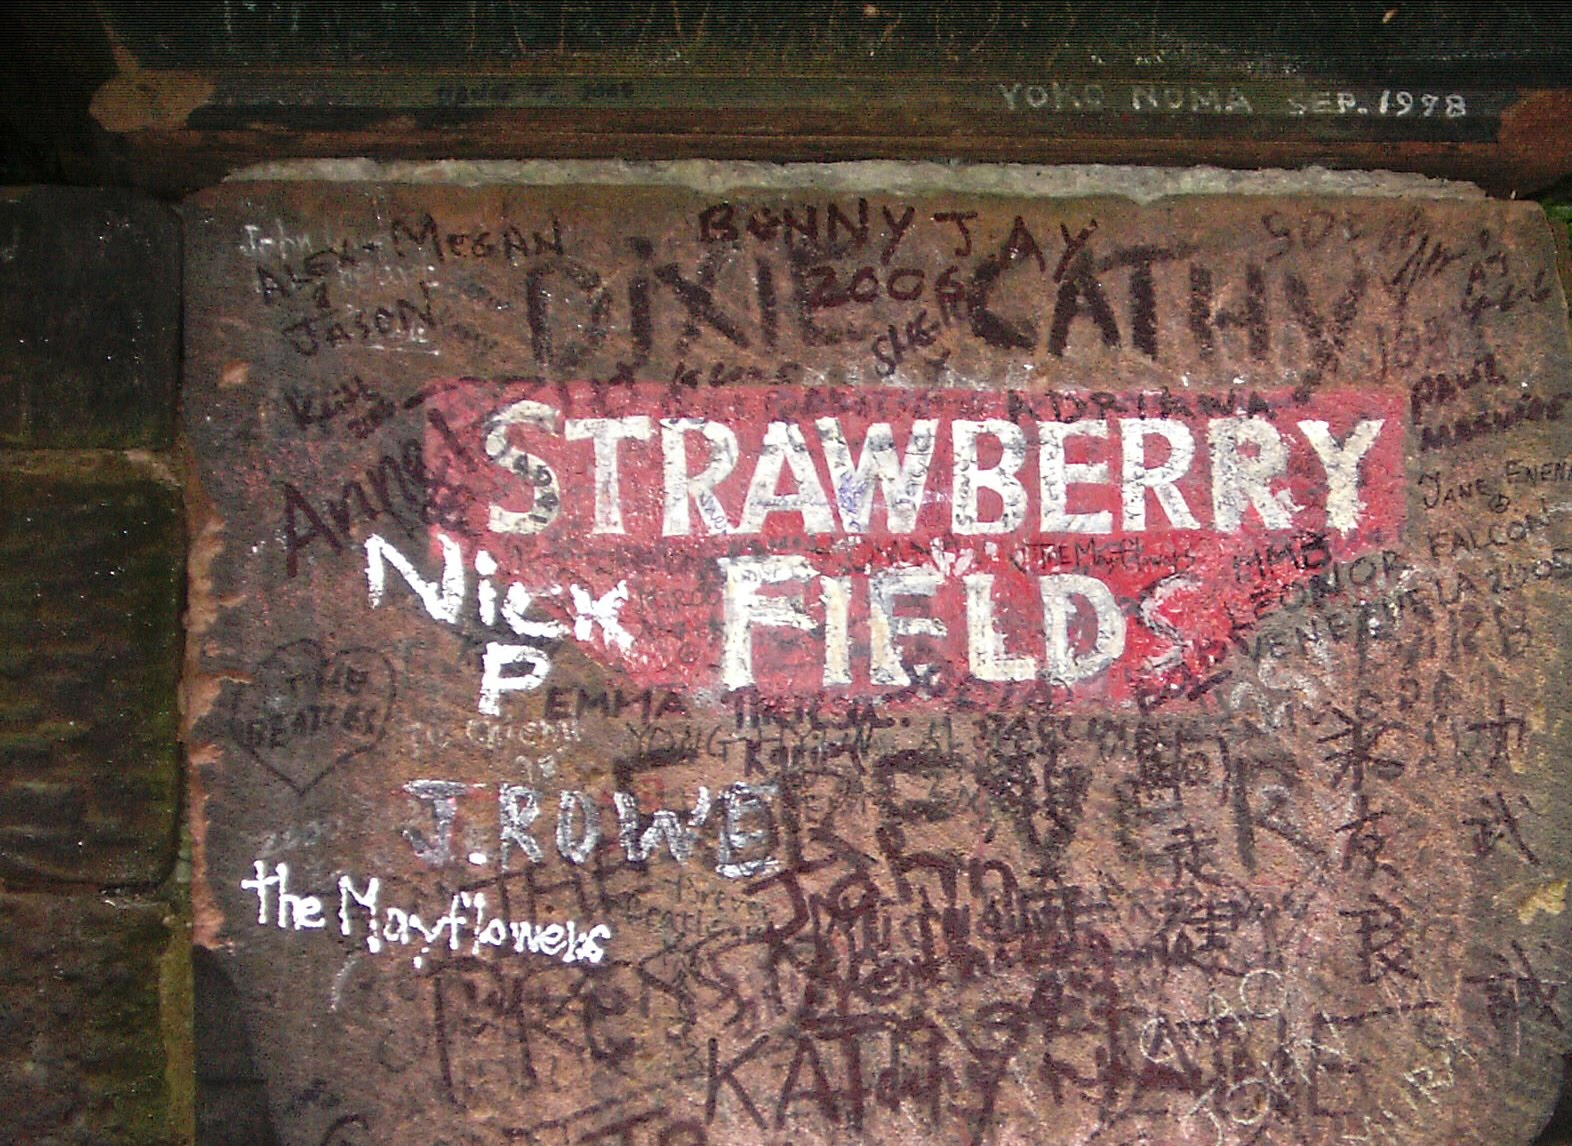 http://4.bp.blogspot.com/_N7FiXwKHEhs/TGWWSpkyloI/AAAAAAAAEgs/MN9ogr6jAXU/s1600/Strawberry_fields_liverpool.jpg